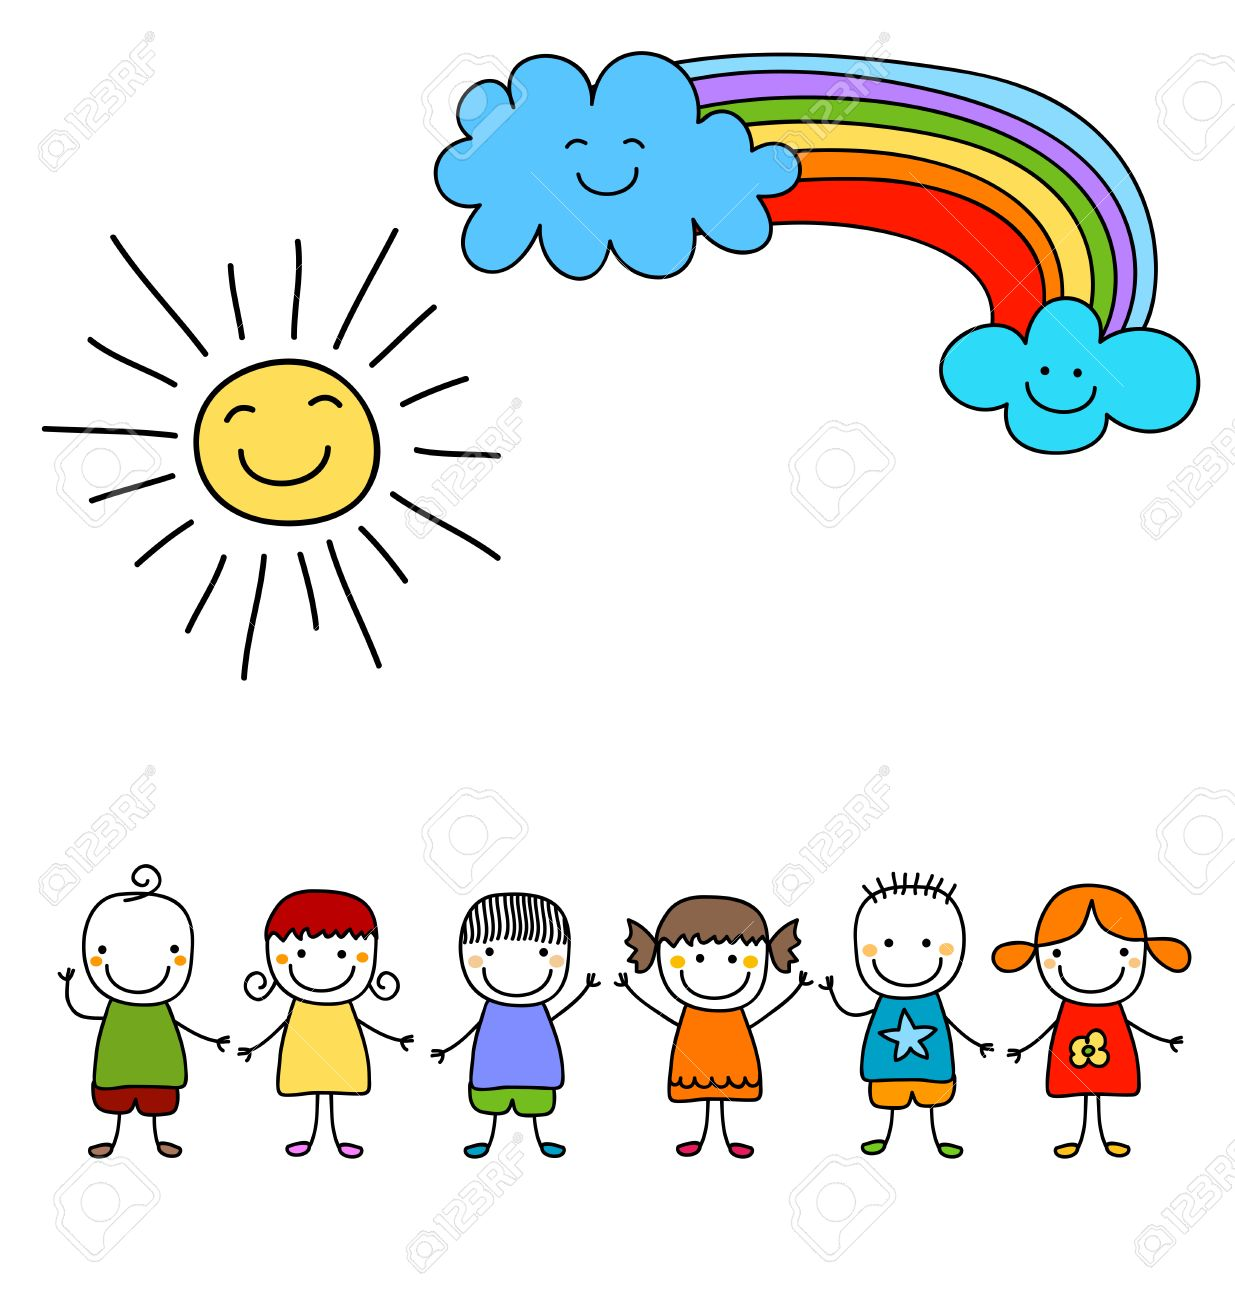 1235x1300 Group Of Kids With Sun And Rainbow, Child Like Drawing Royalty